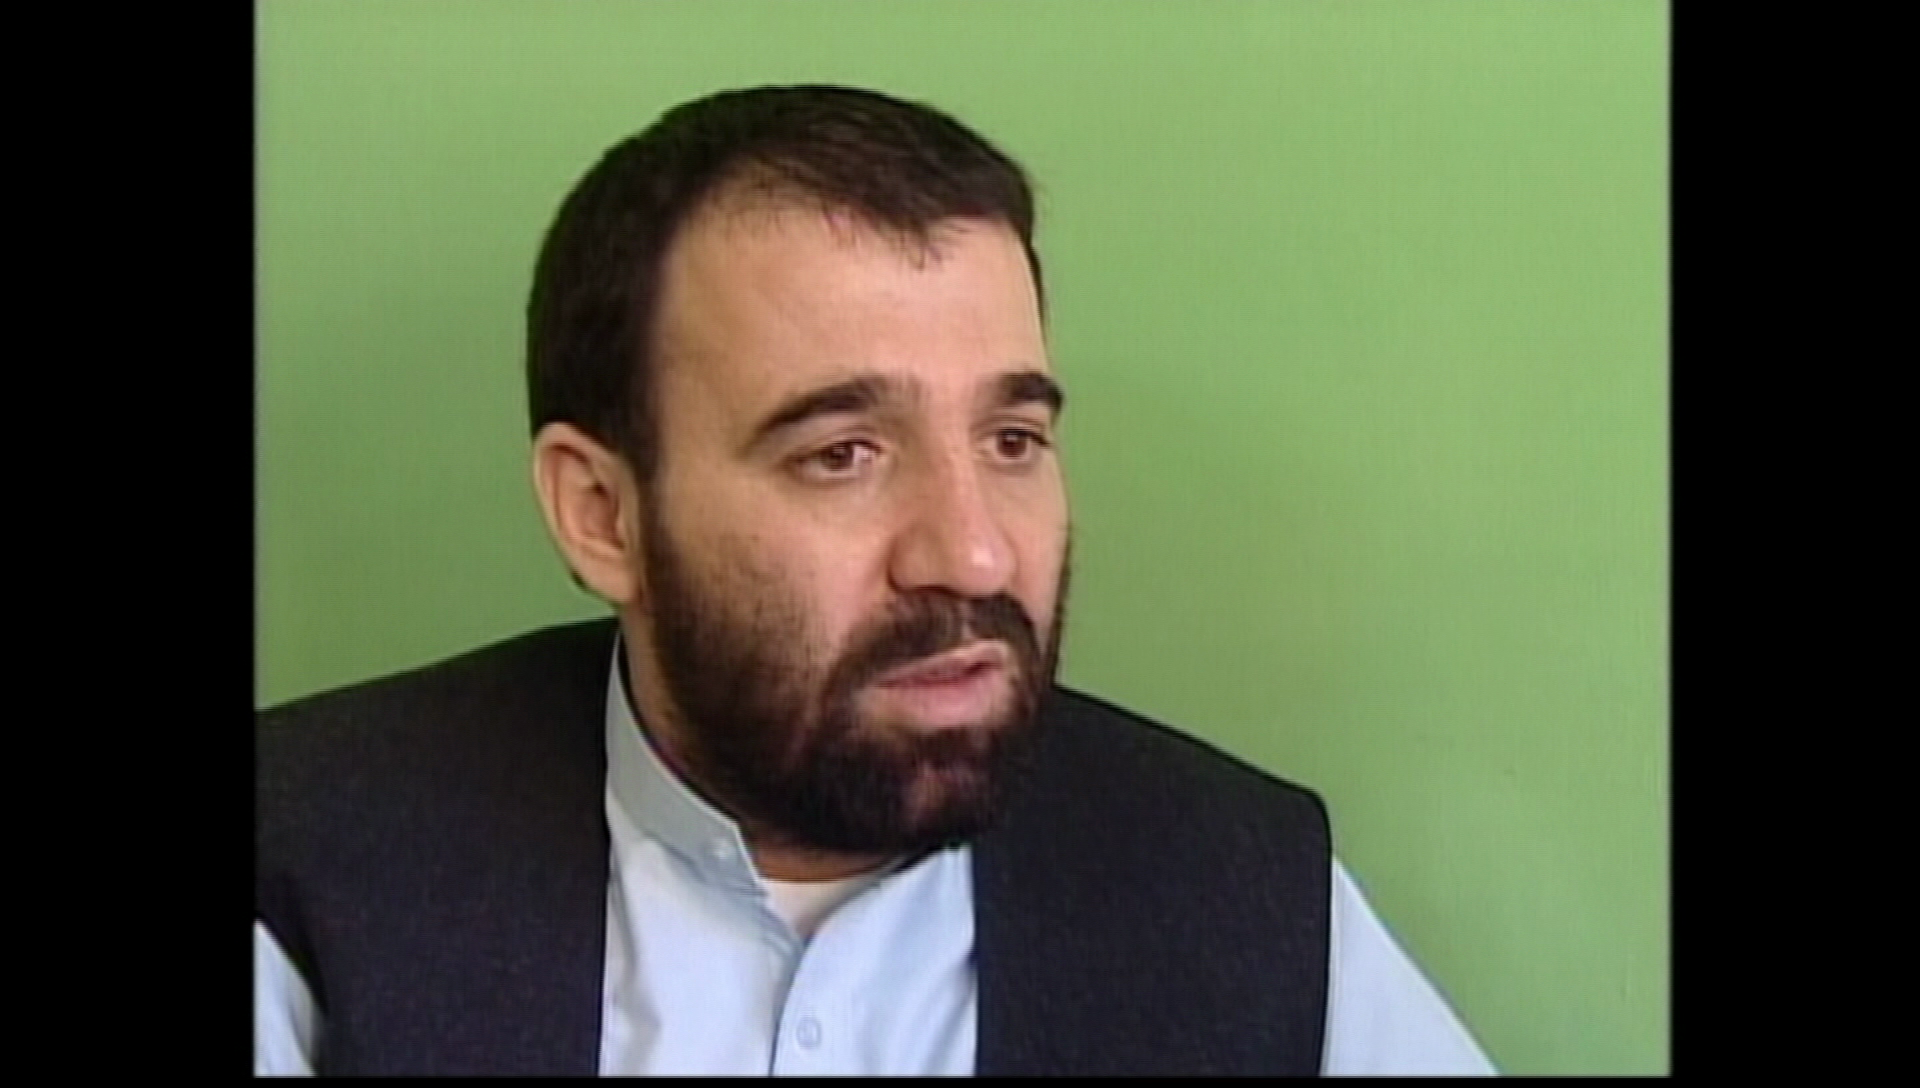 Death of Ahmed Wali Karzai puts fresh attention on fragile country